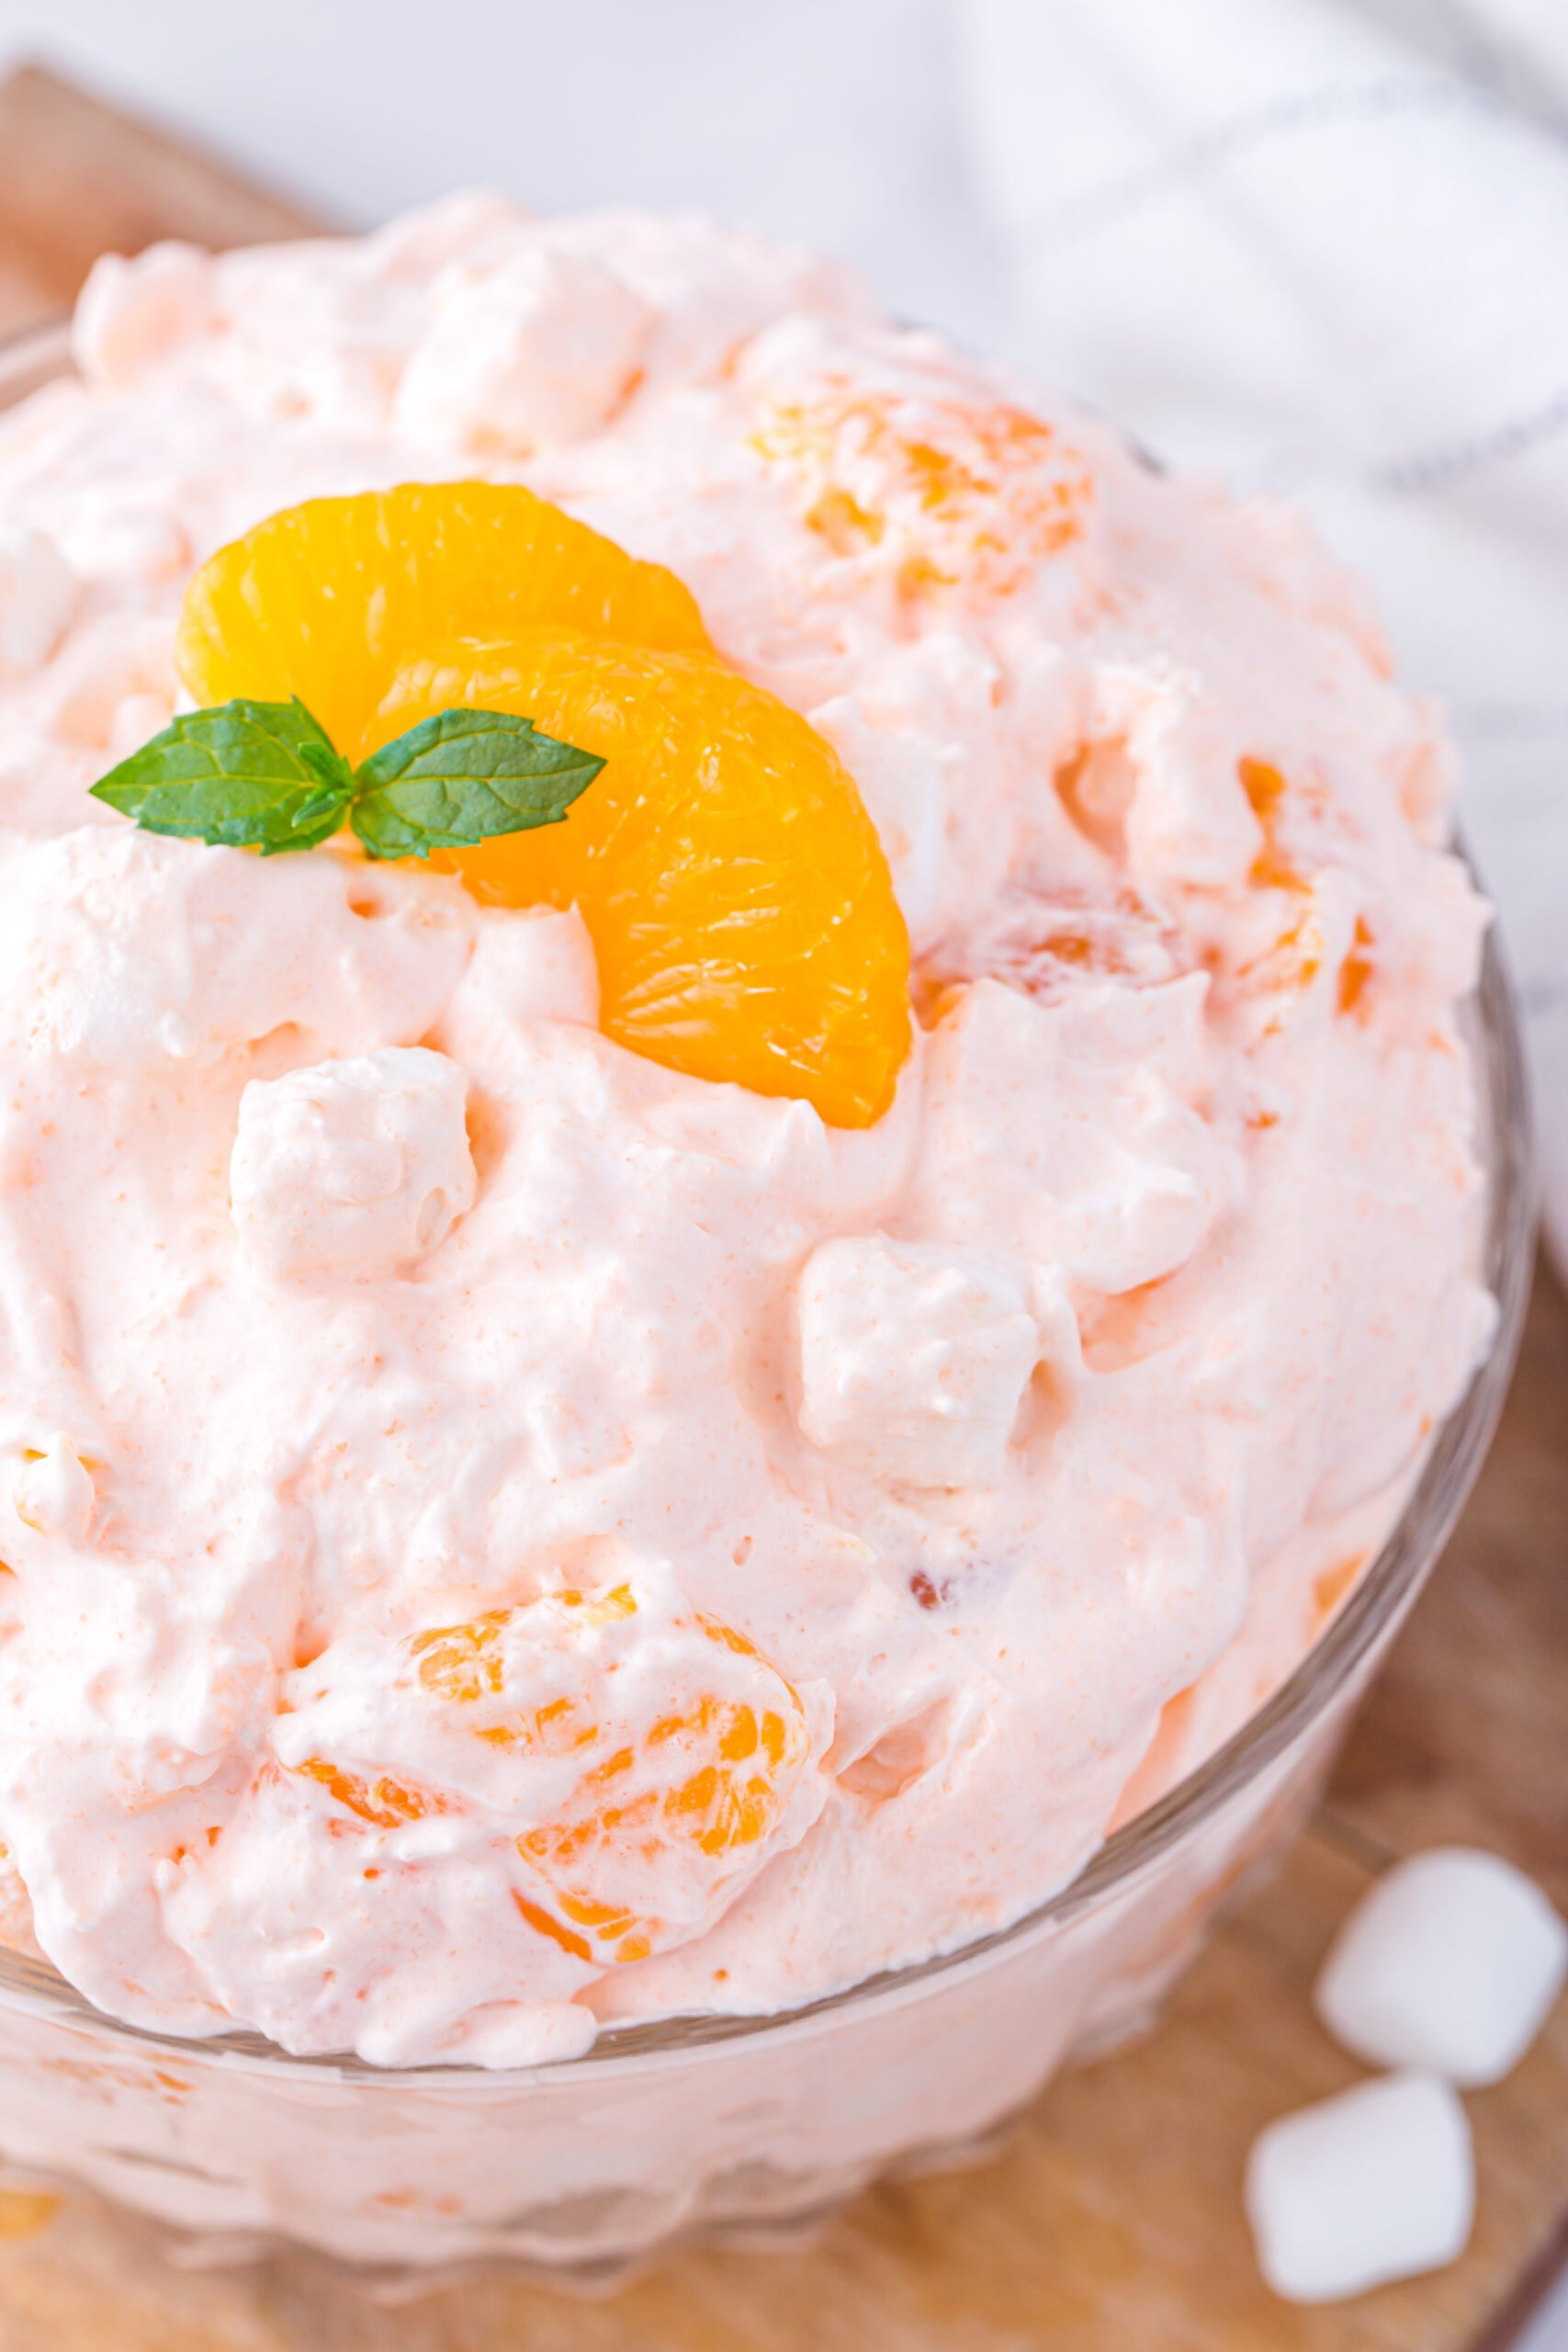 fluffy orange dessert made with whipped topping and canned mandarin orange. Topped with slice of mandarin orange and fresh mint sprig.